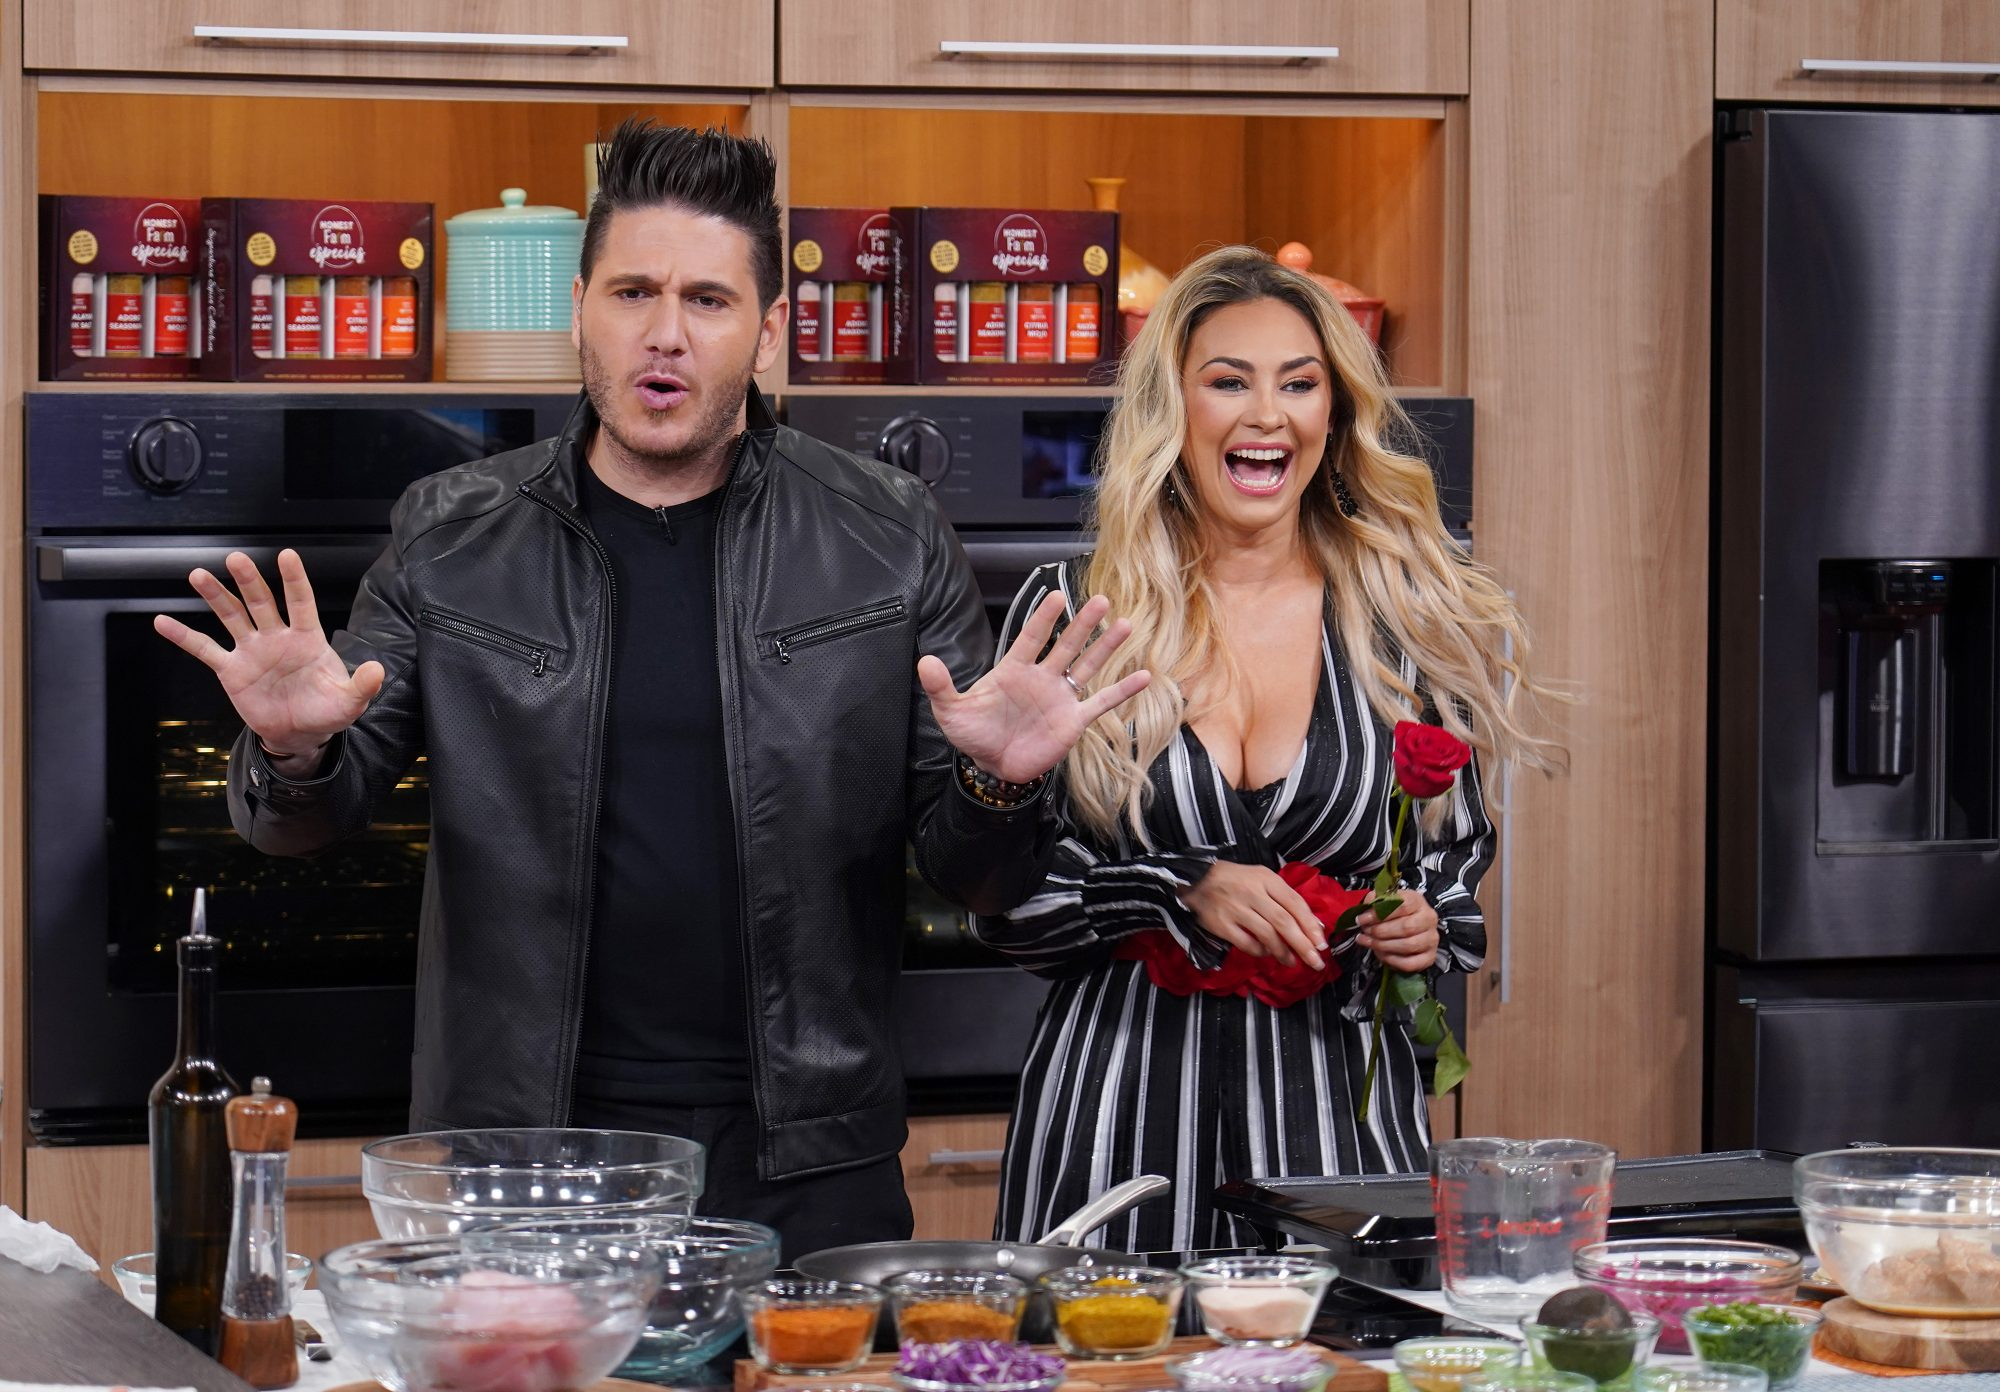 Chef James y Aracely Arámbula.